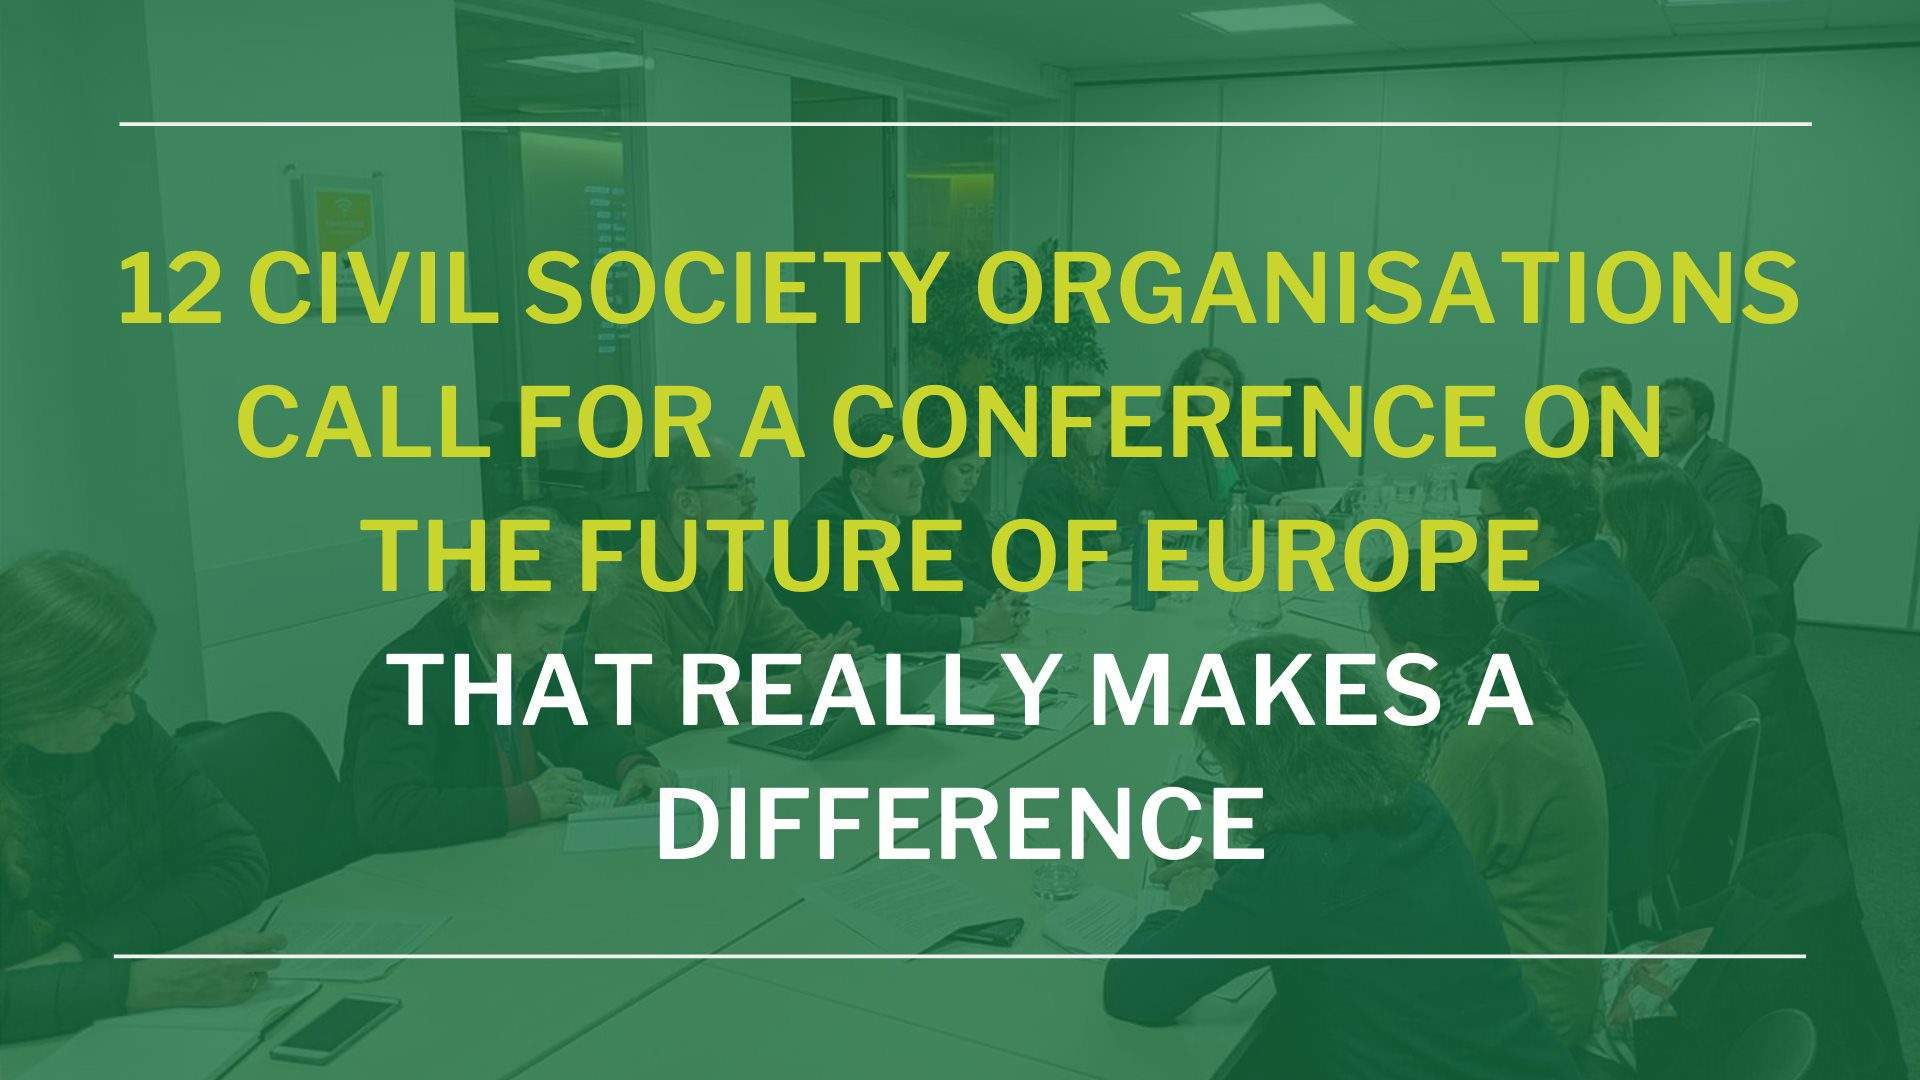 Recommendations For A Successful And Effective Conference On The Future Of Europe